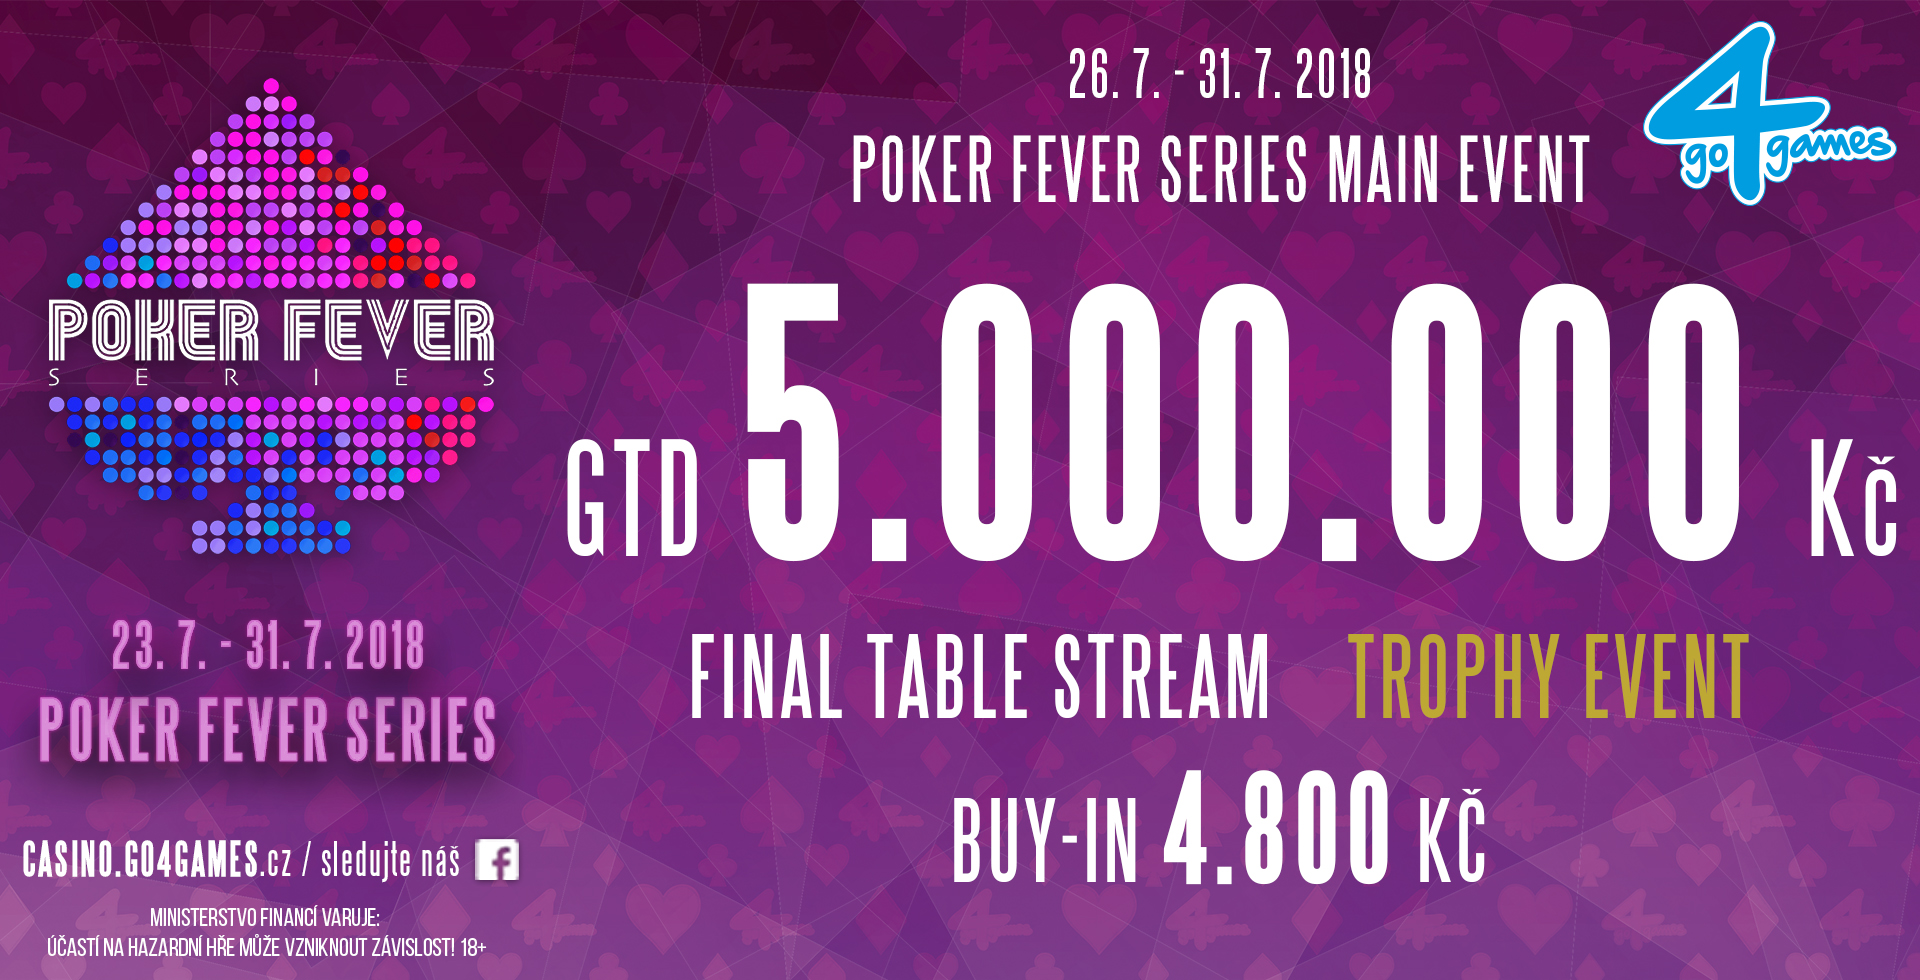 1920x980_Poker fever series MAIN EVENT